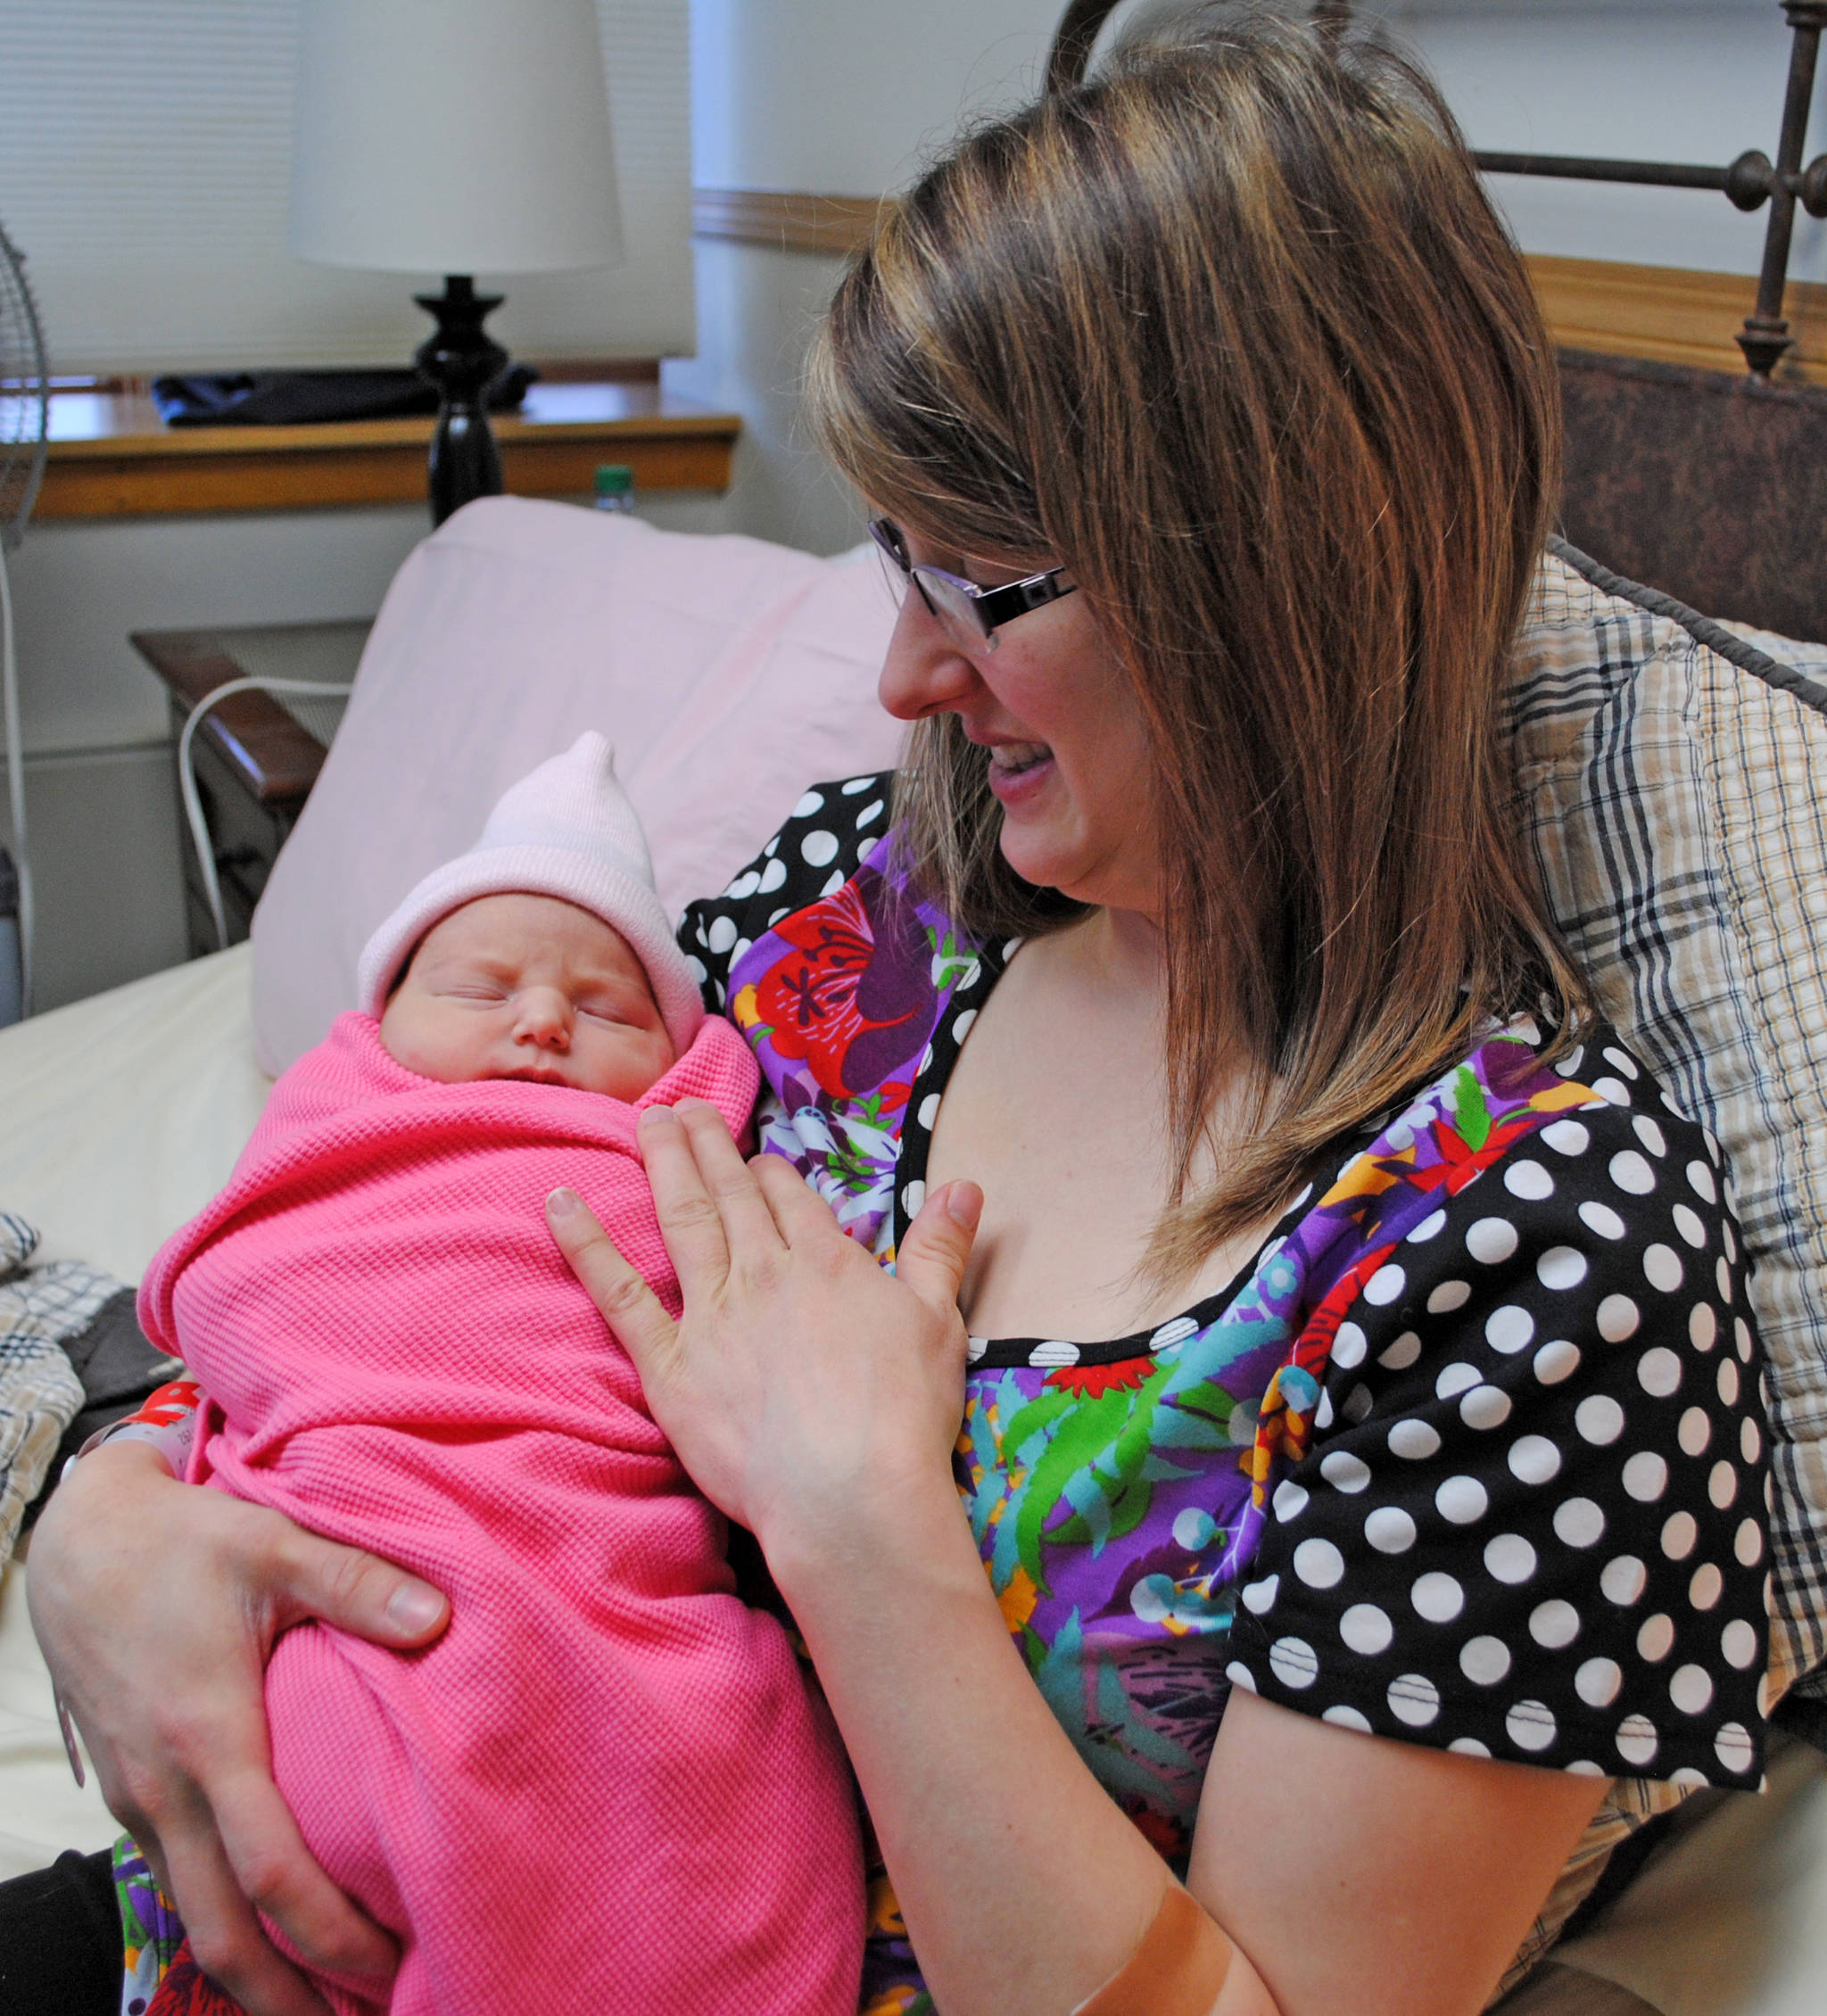 Chelsea Samora of Kenai holds her newborn daughter, Zoe, whose Jan. 3 birthday makes her the first baby born in Central Peninsula Hospital in 2018. (Photo by Kat Sorensen/Peninsula Clarion)